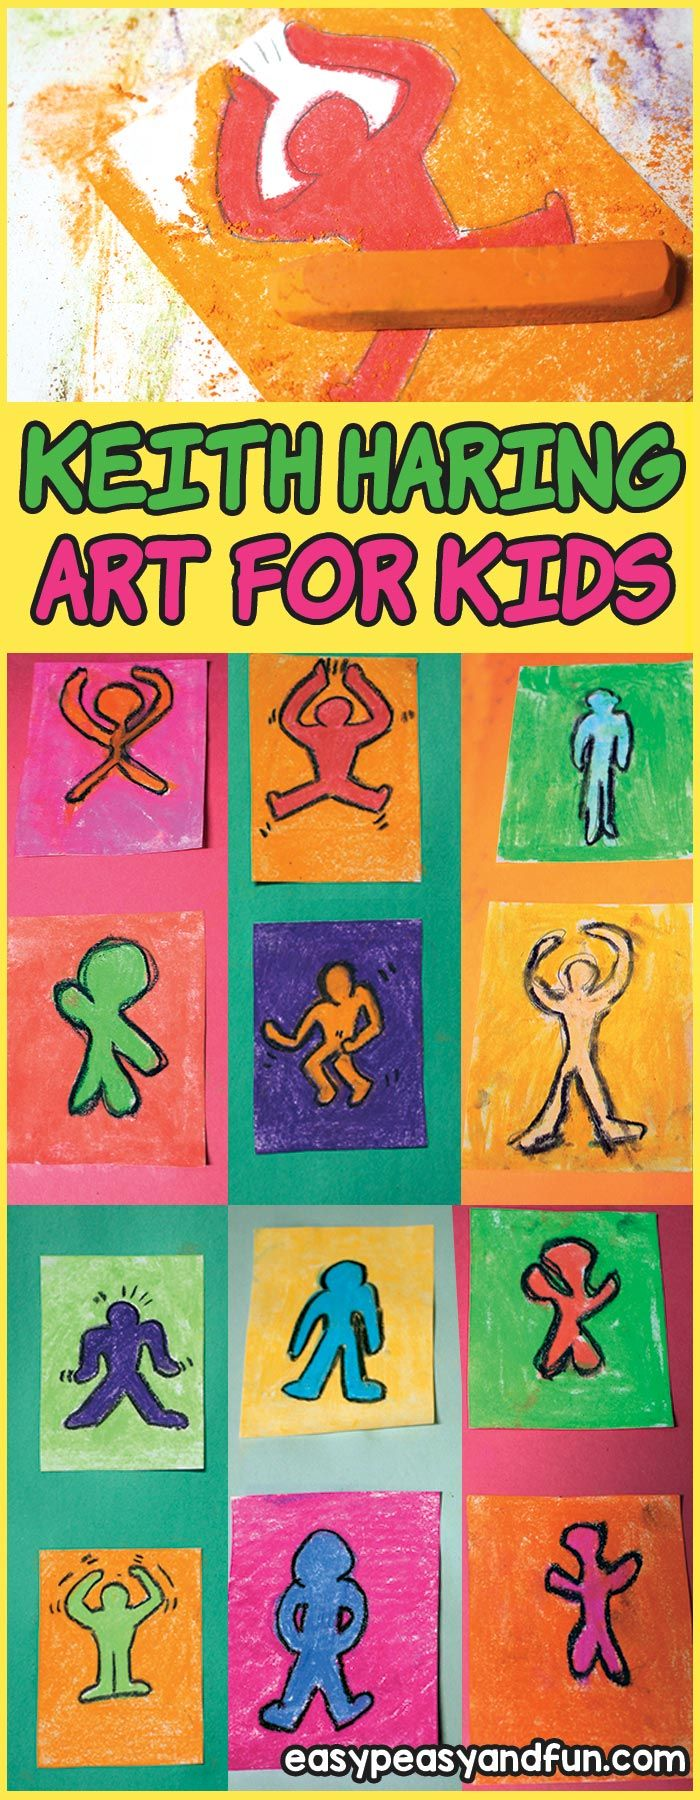 Die besten 25 keith haring kids ideen auf pinterest for Keith haring figure templates